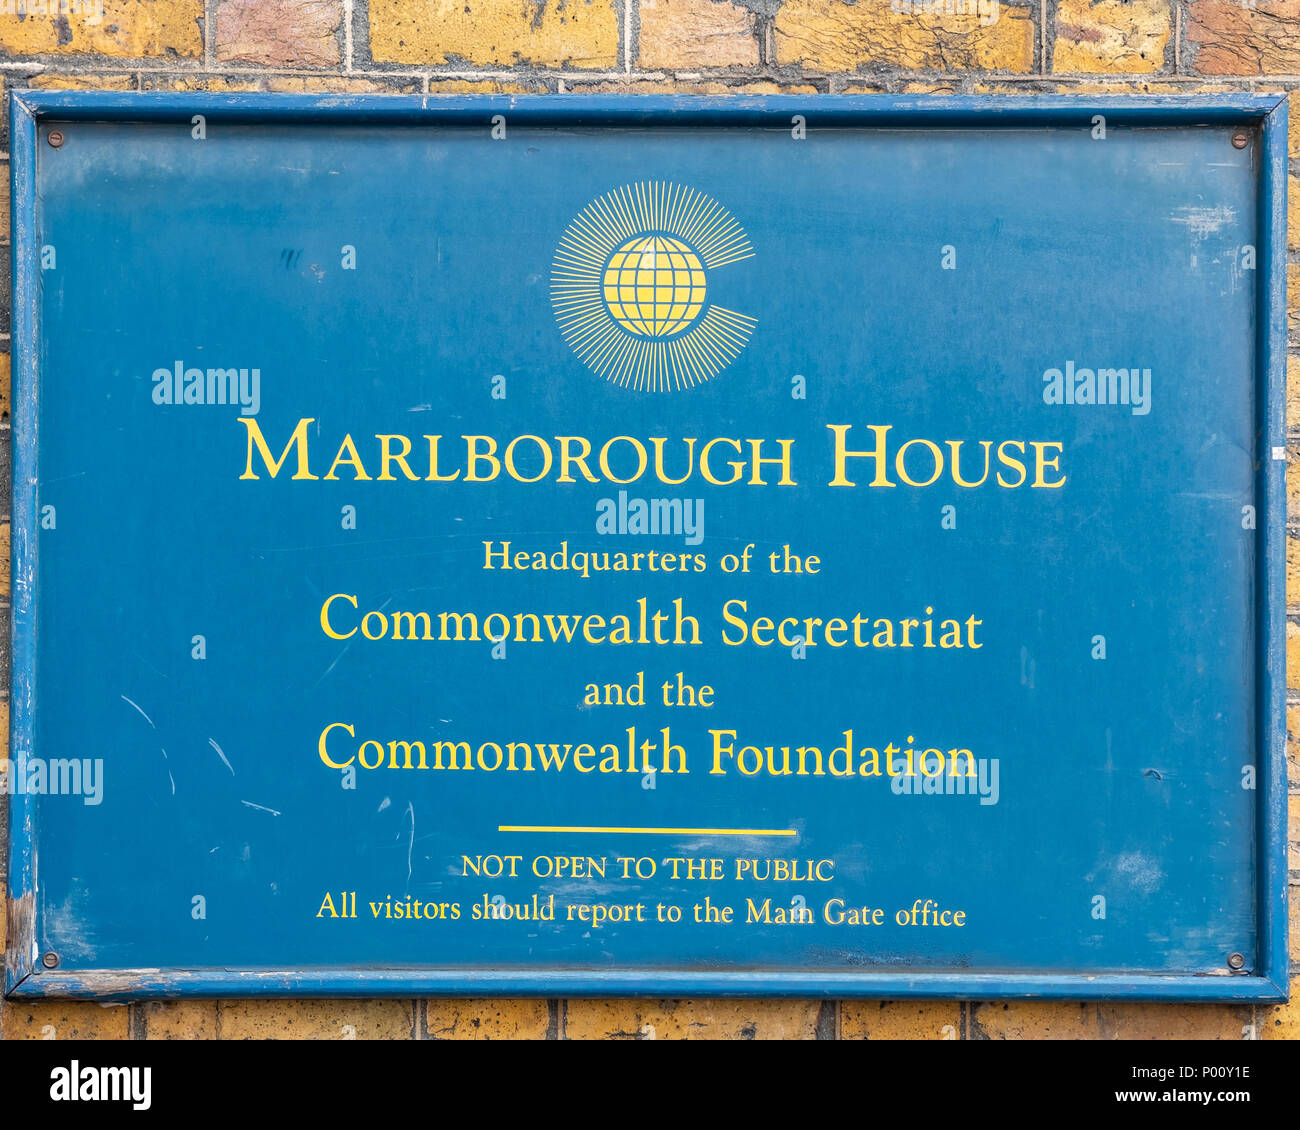 Sign outside of Marlborough House, Headquarters of the Commonwealth Secretariat and the Commonwealth Foundation. Stock Photo